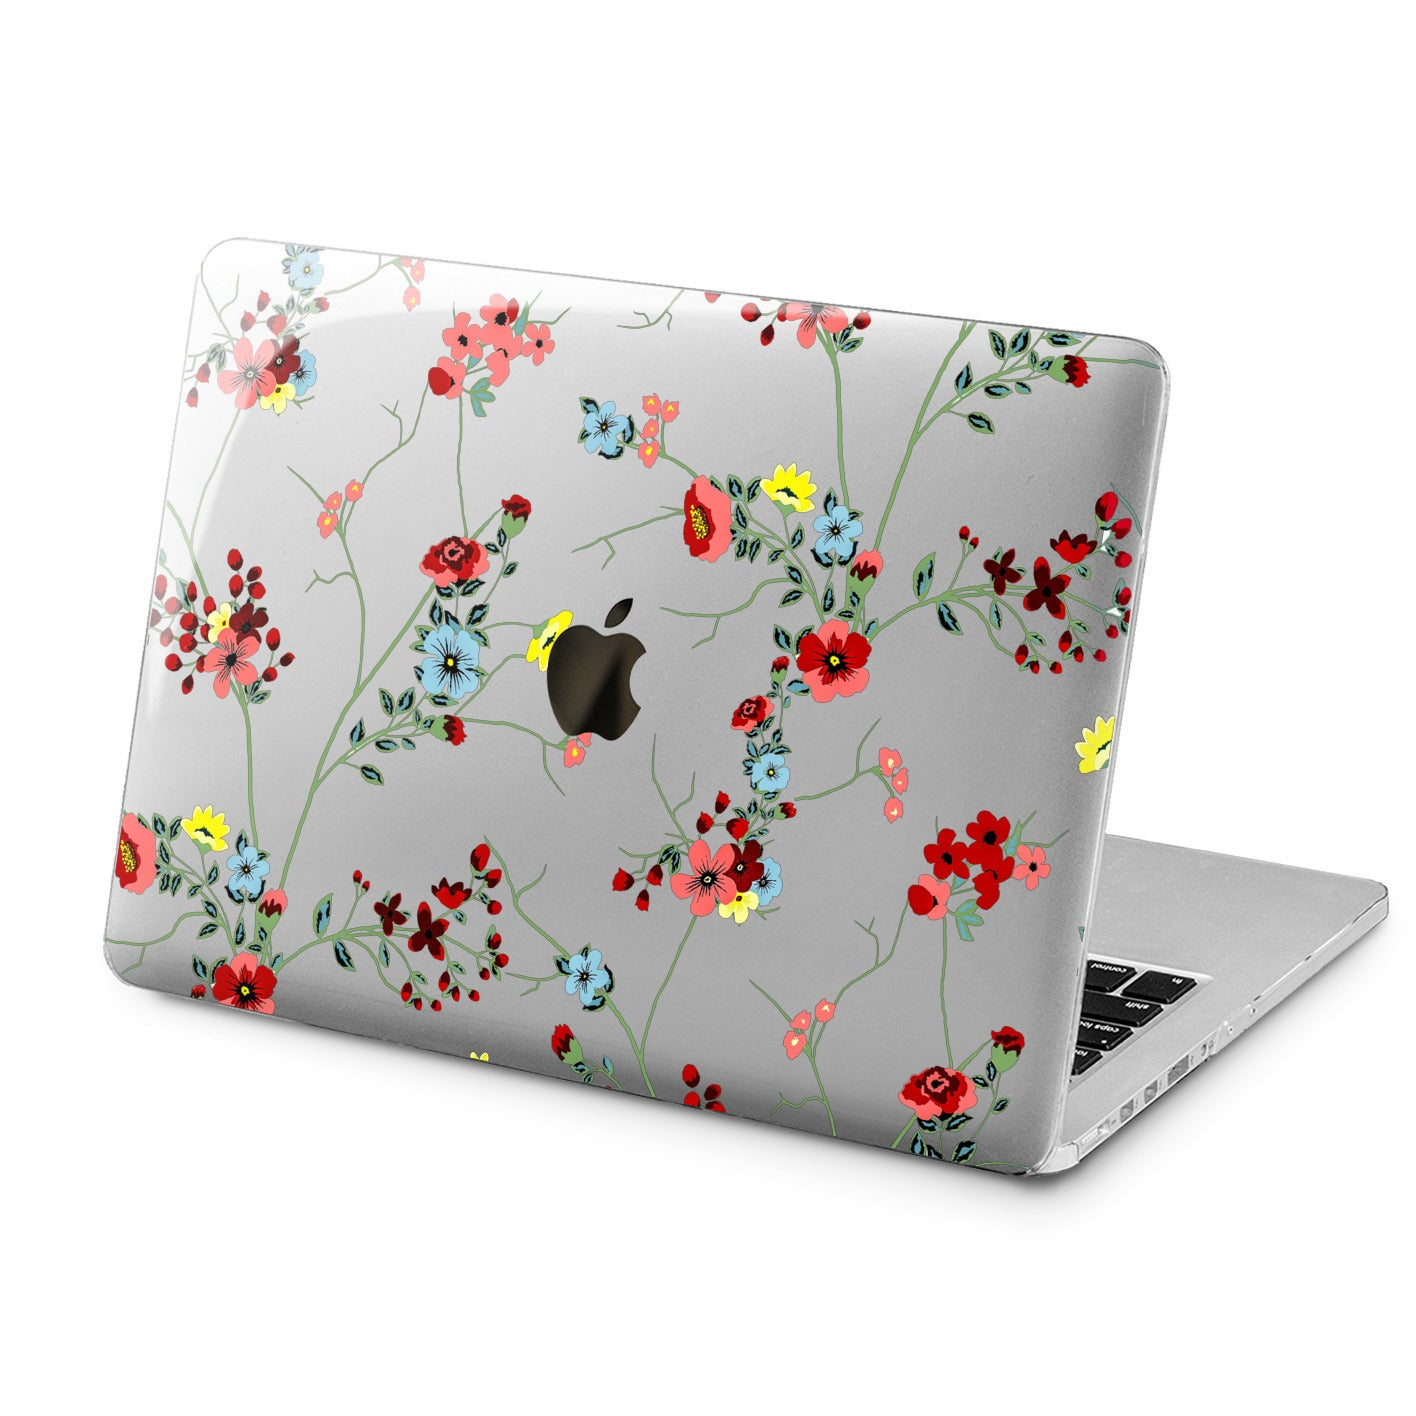 Lex Altern Lex Altern Red Wildflowers Case for your Laptop Apple Macbook.